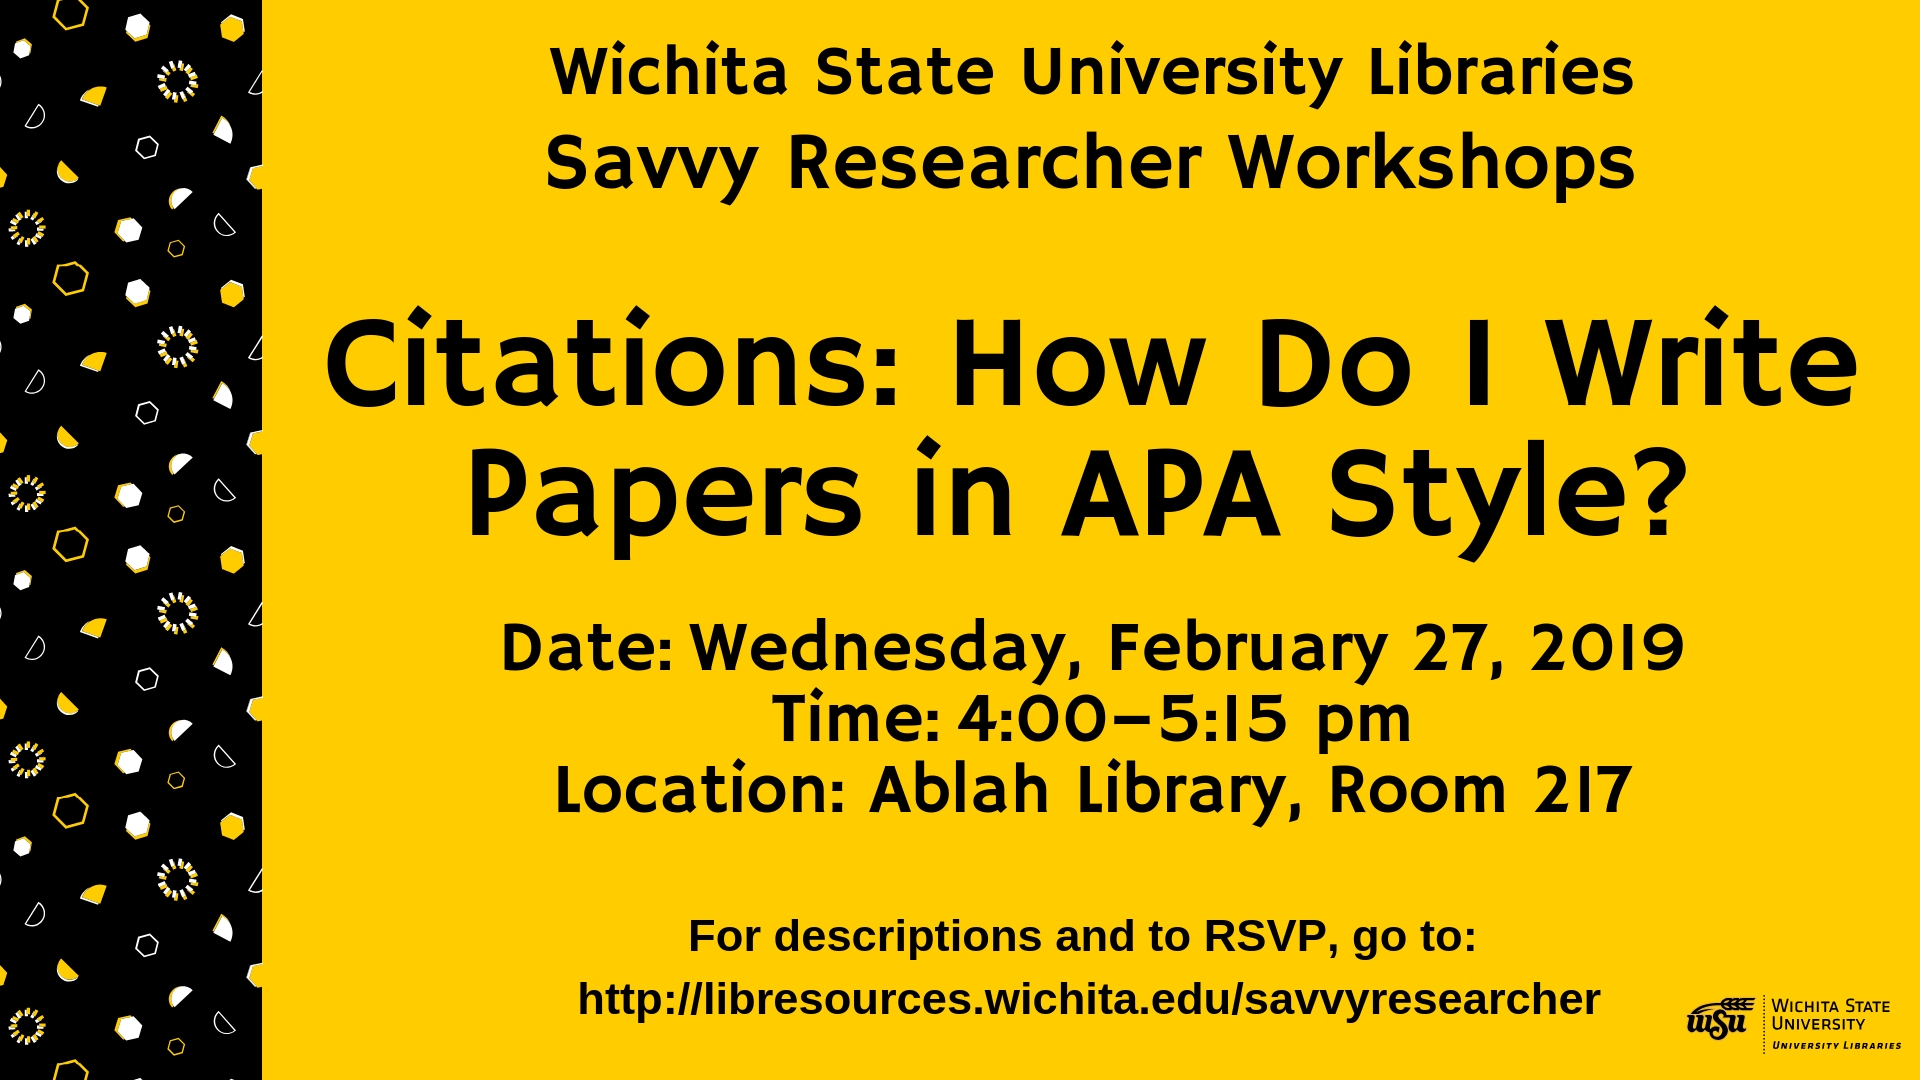 Citations: How Do I Write Papers in APA Style?